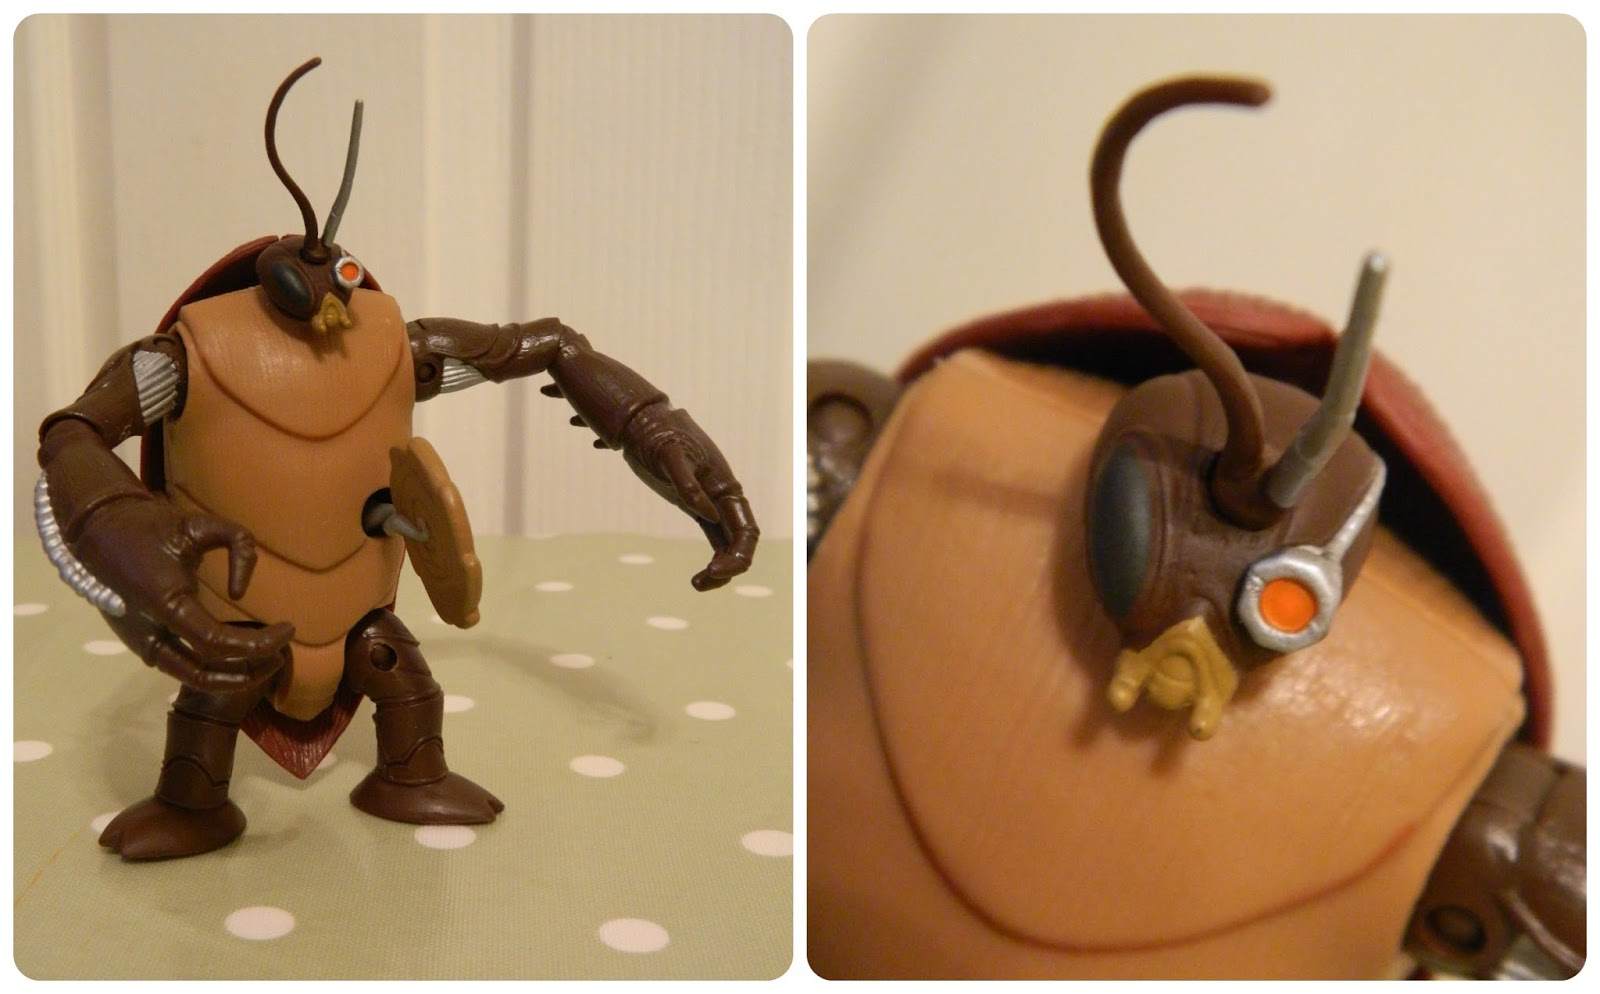 Teenage Mutant Ninja Turtles Cockroach Action Figure